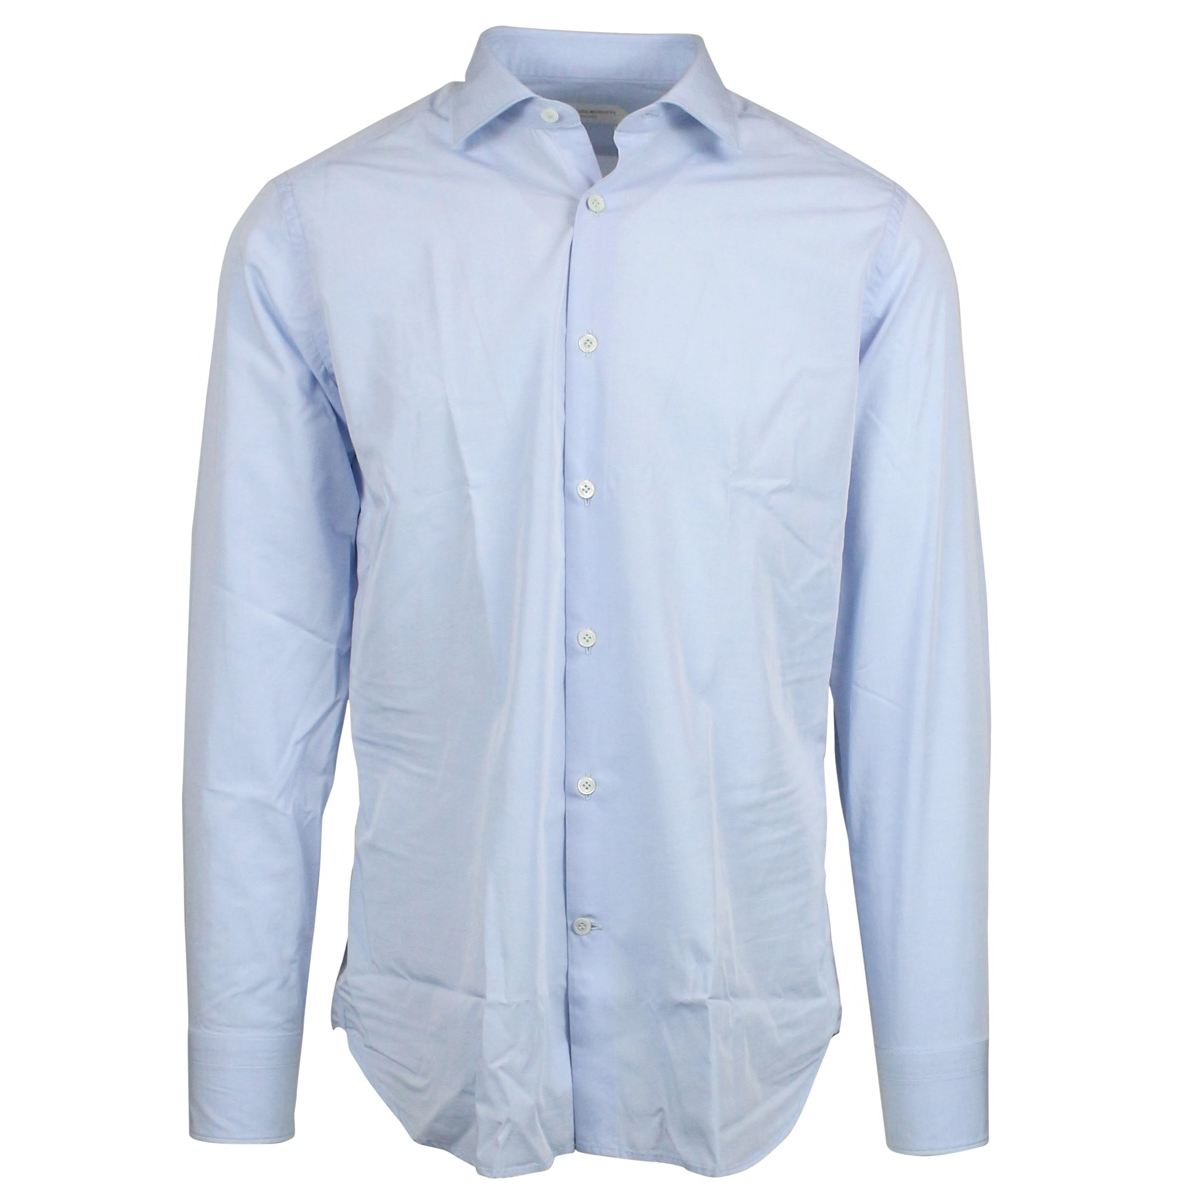 Custom-fit French collar shirt Heavenly Guglilminotti